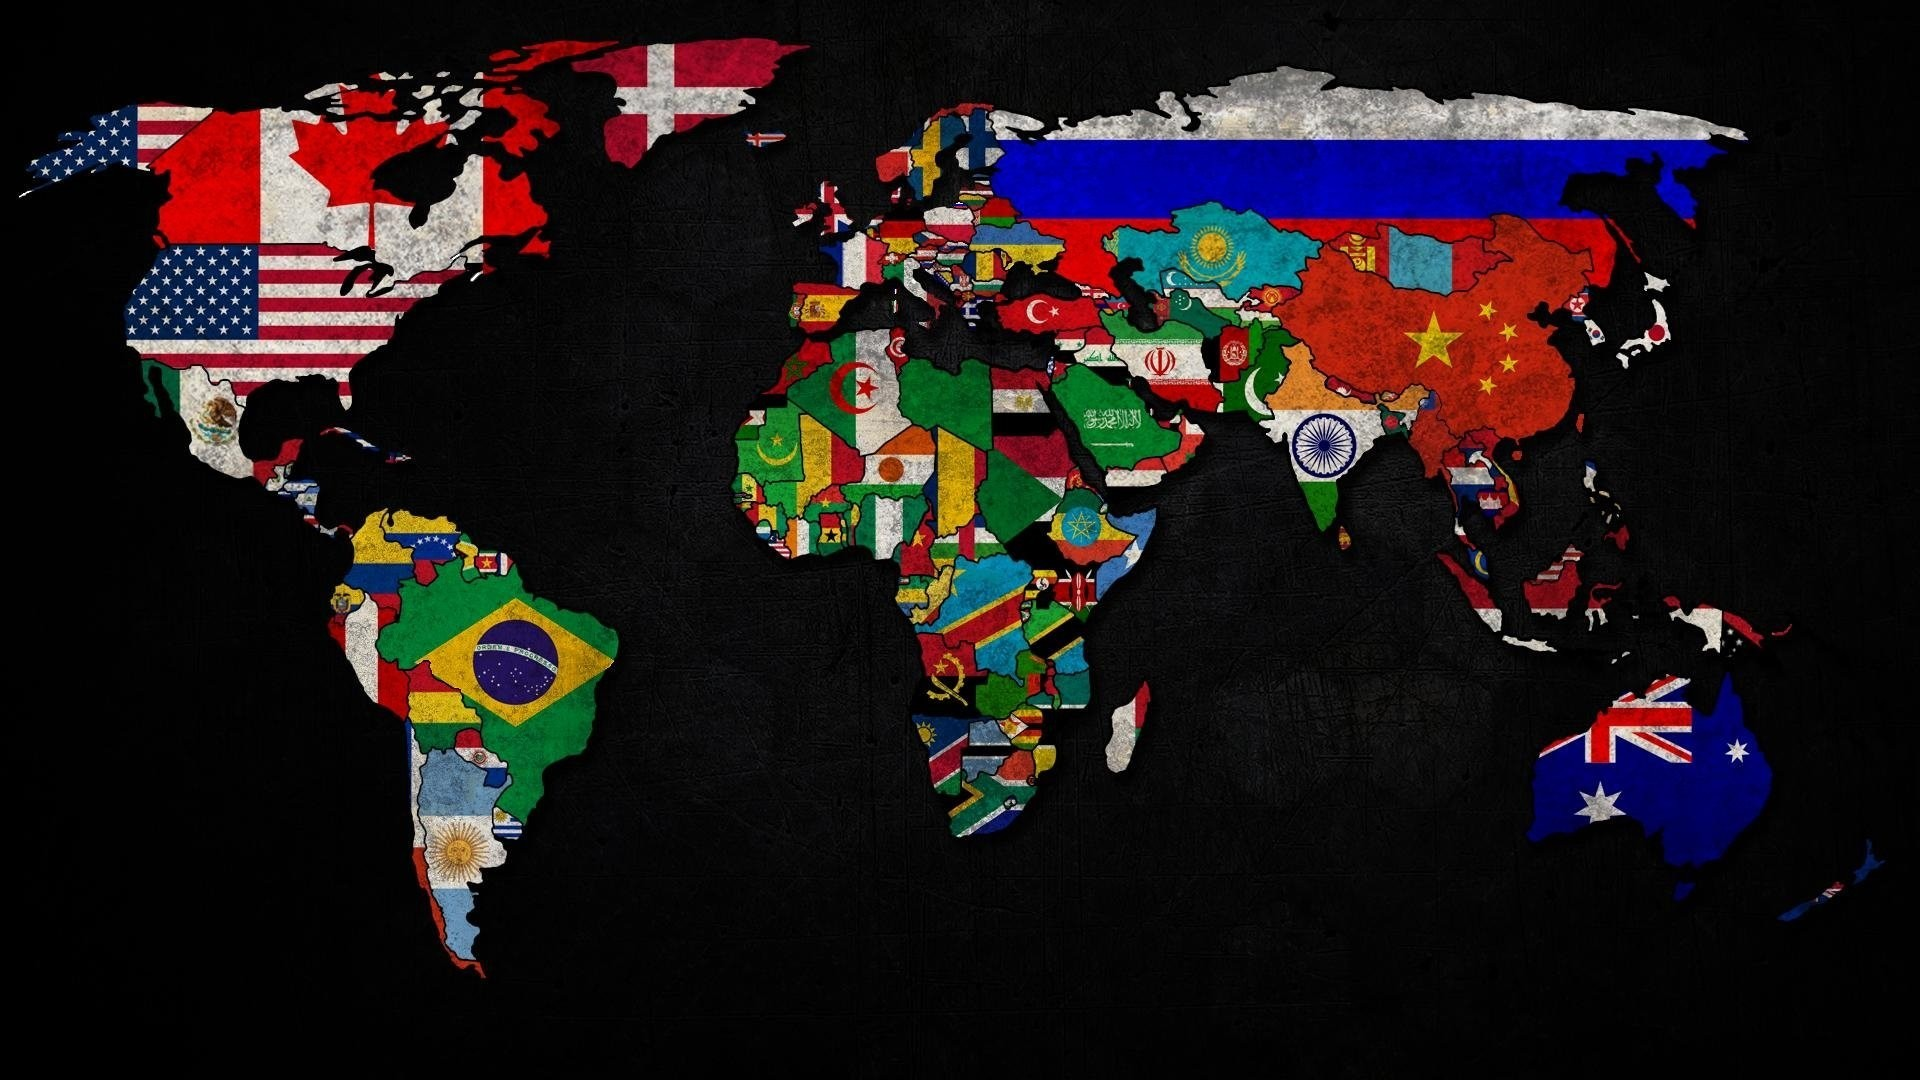 Res: 1920x1080, World Map Wallpaper For Laptop Best 151 World Map Hd Wallpapers